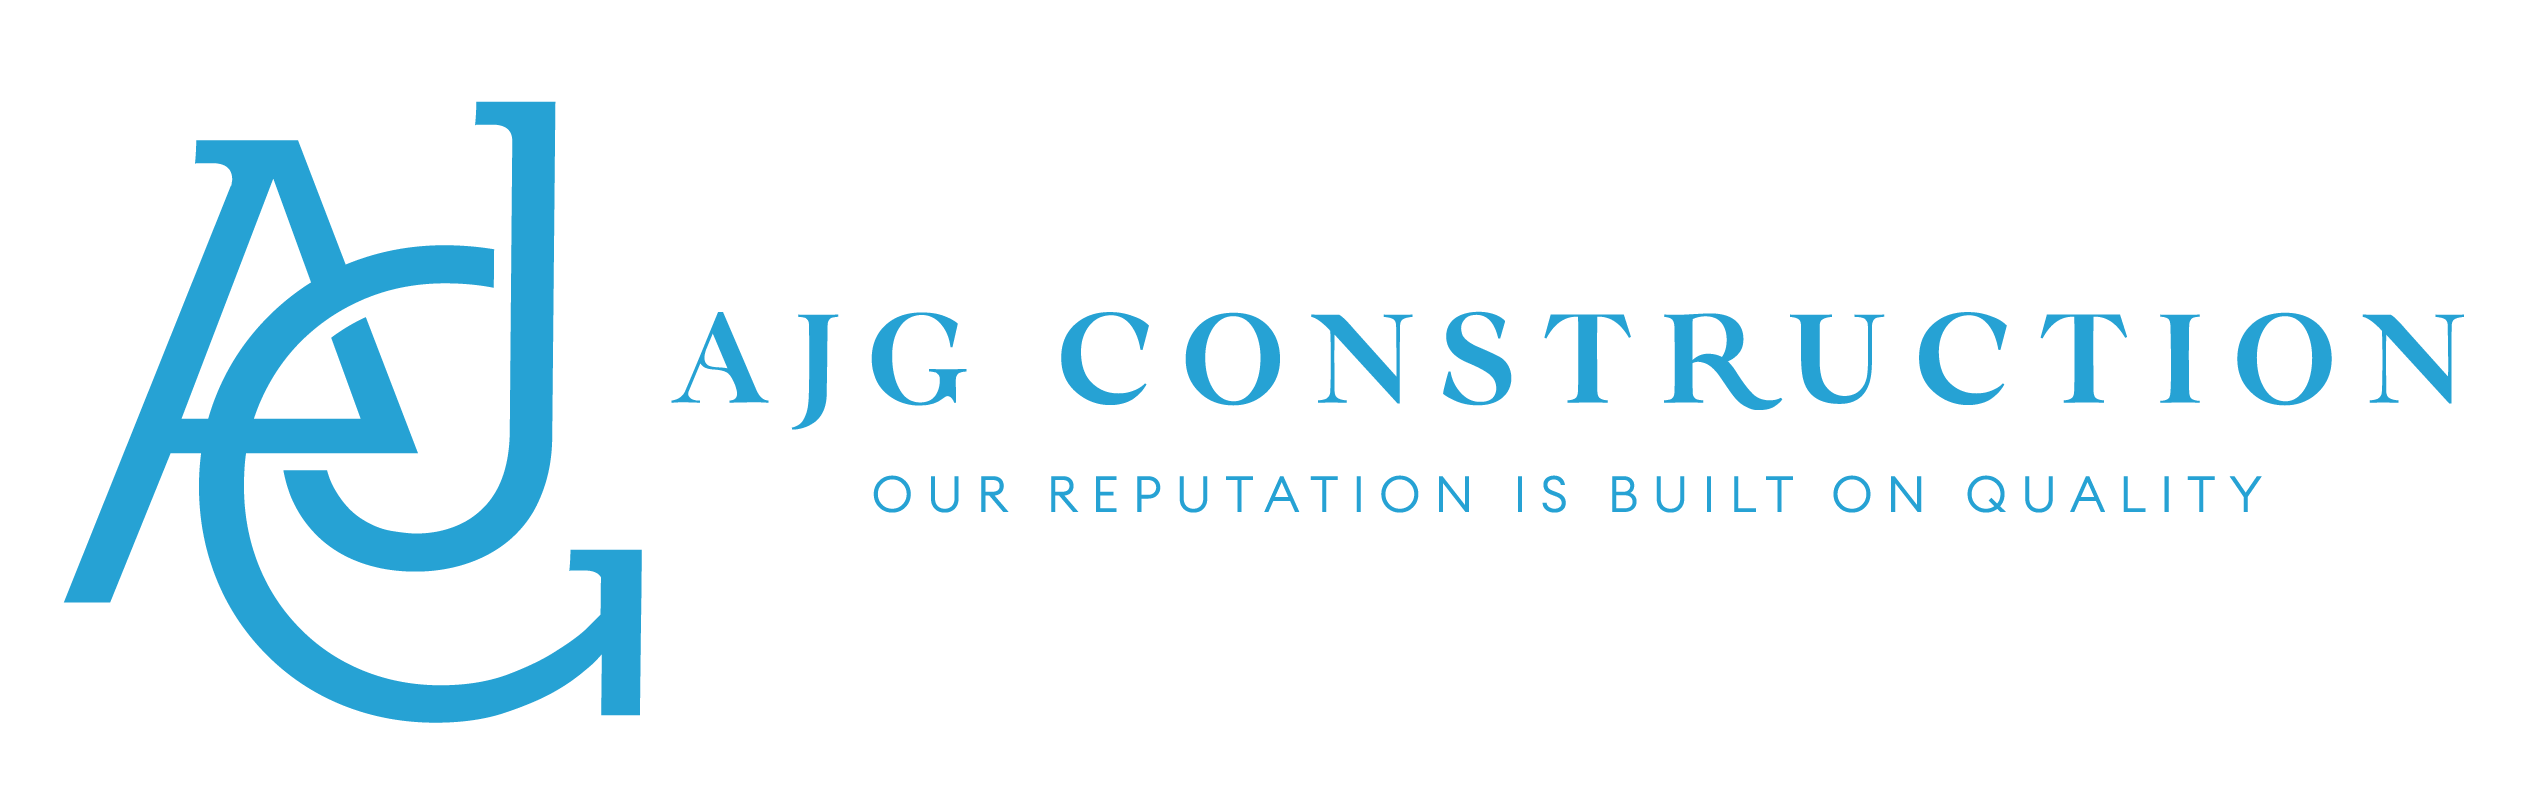 AJG Construction